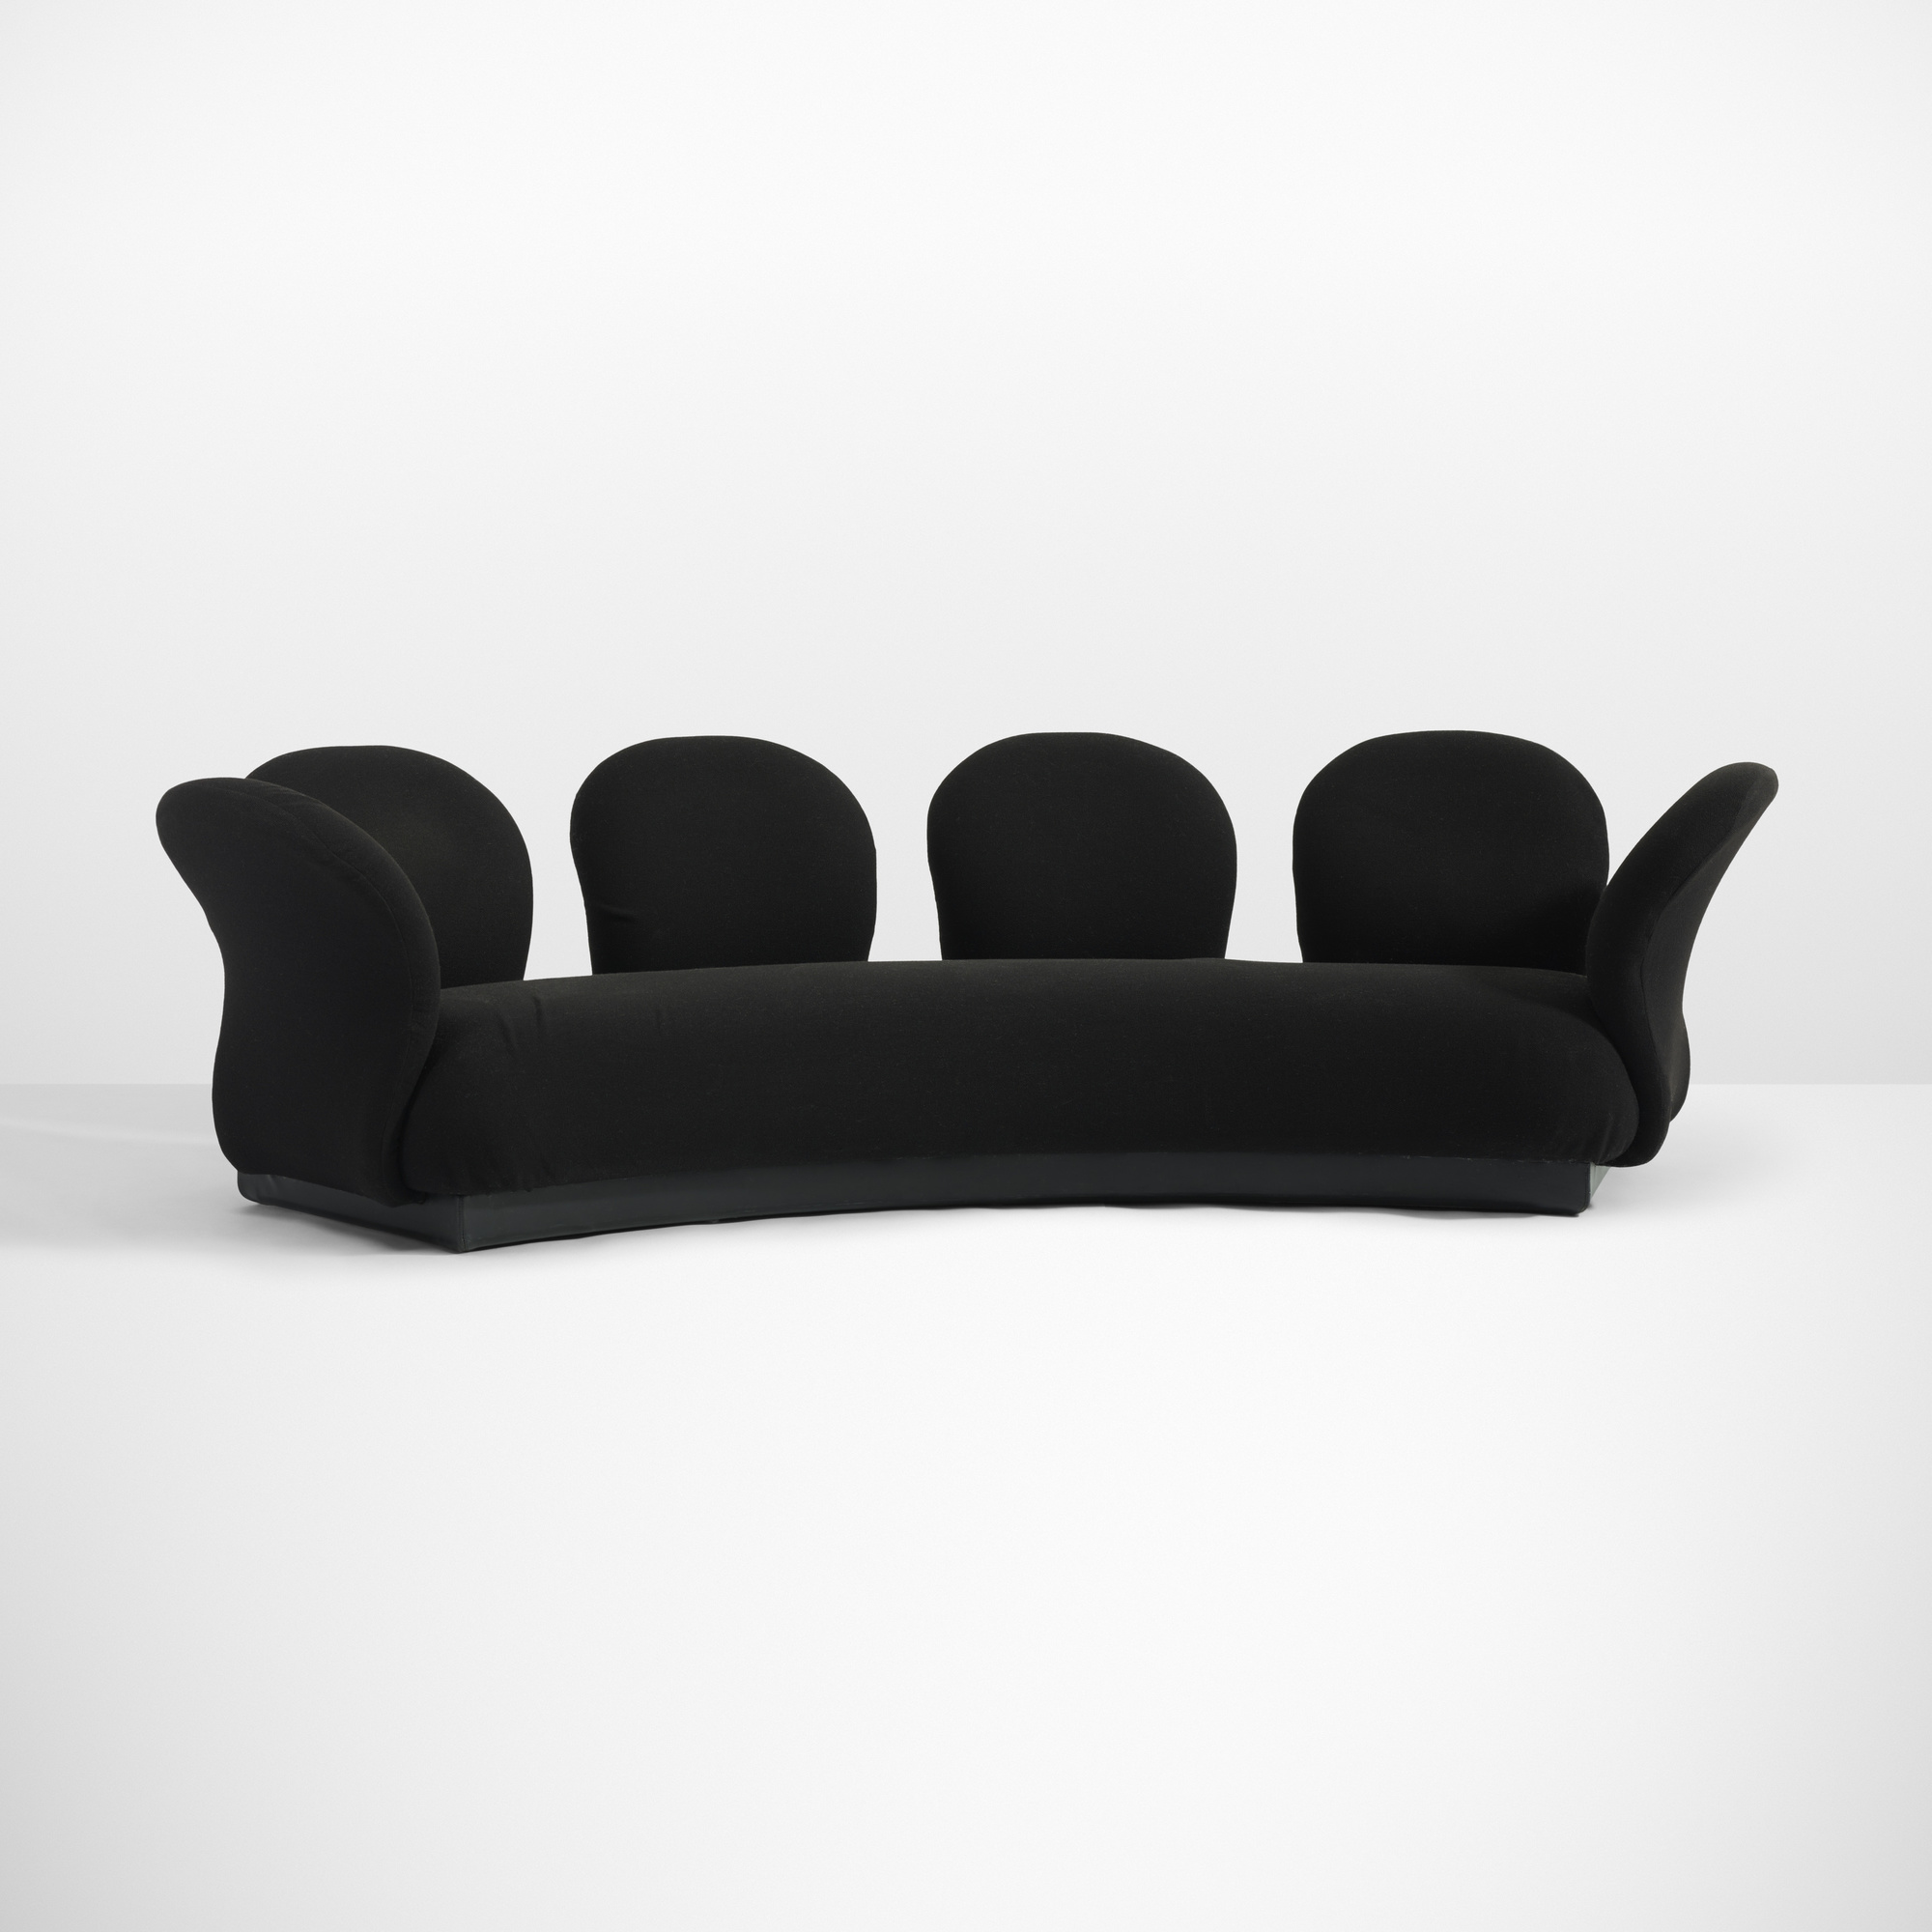 3: Pierre Paulin / Rare Multimo sofa, model 282 (1 of 3)